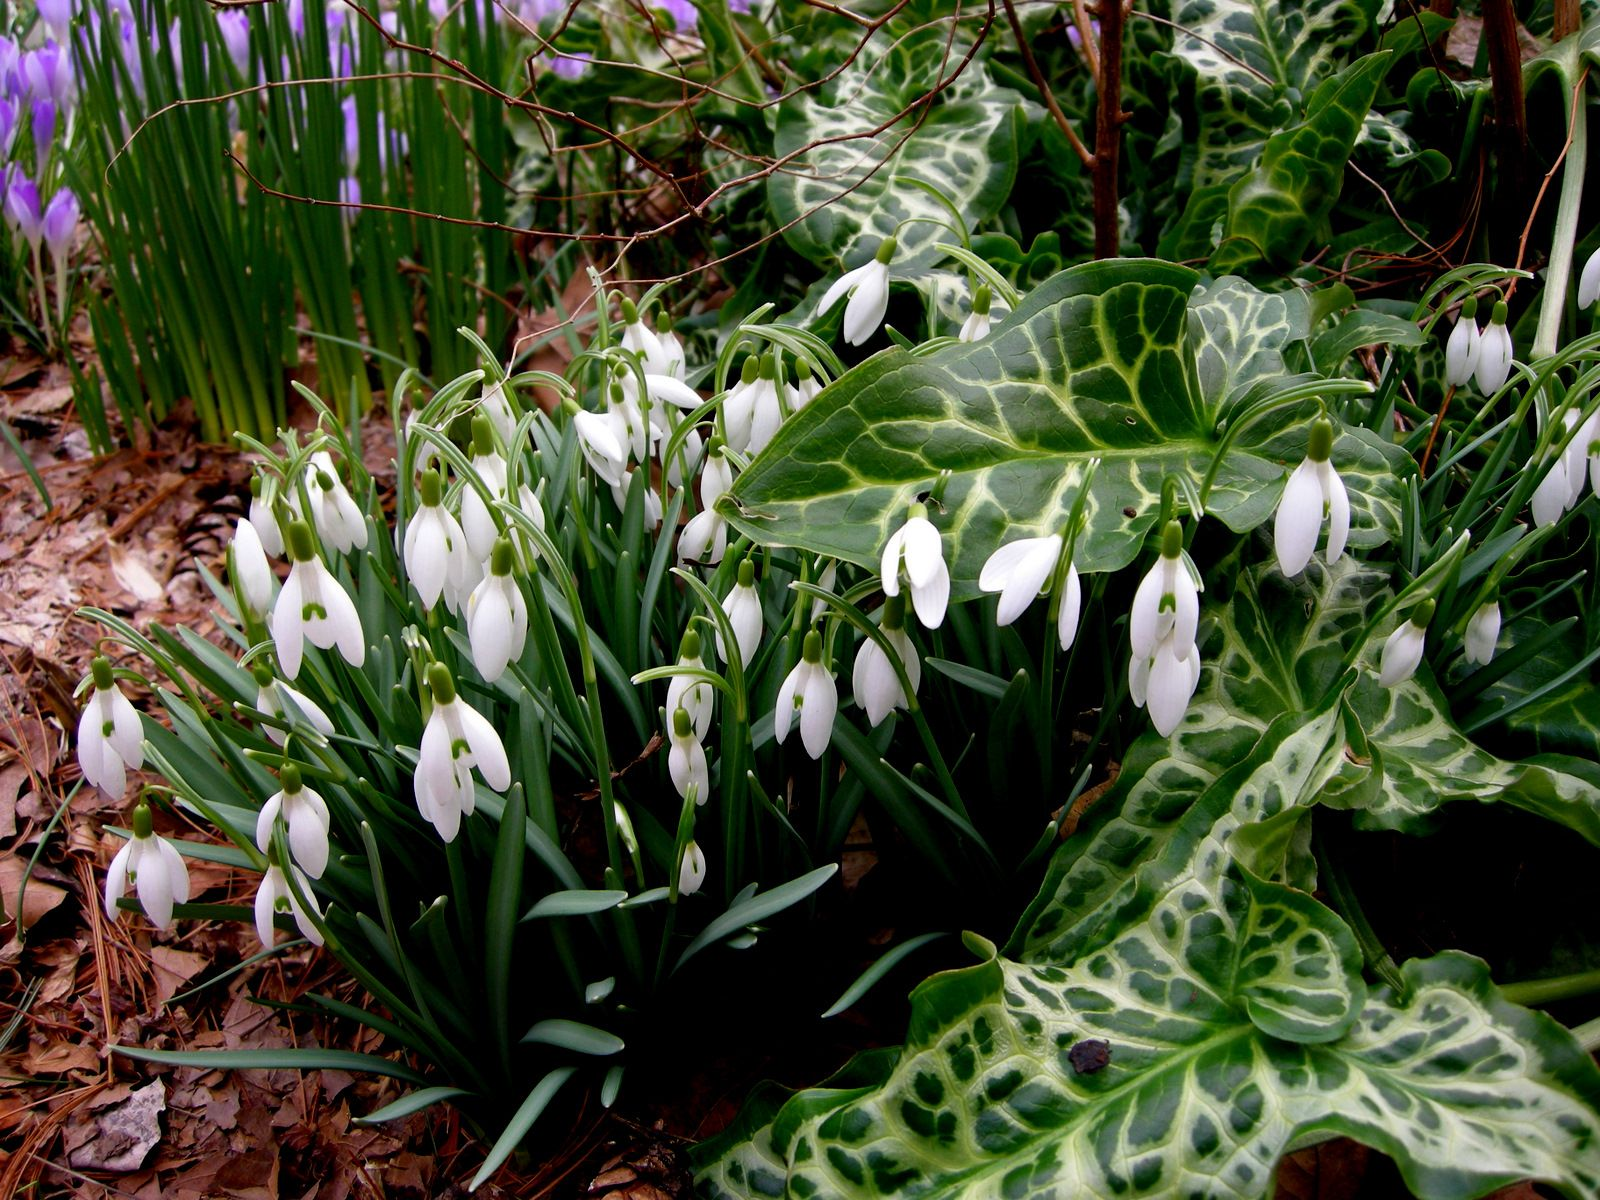 Common Snowdrops Pair Well With Snow Crocus Just Visible In The Background And Really Bring Out The Silver Patterning On T Shade Garden Plants Bulbous Plants